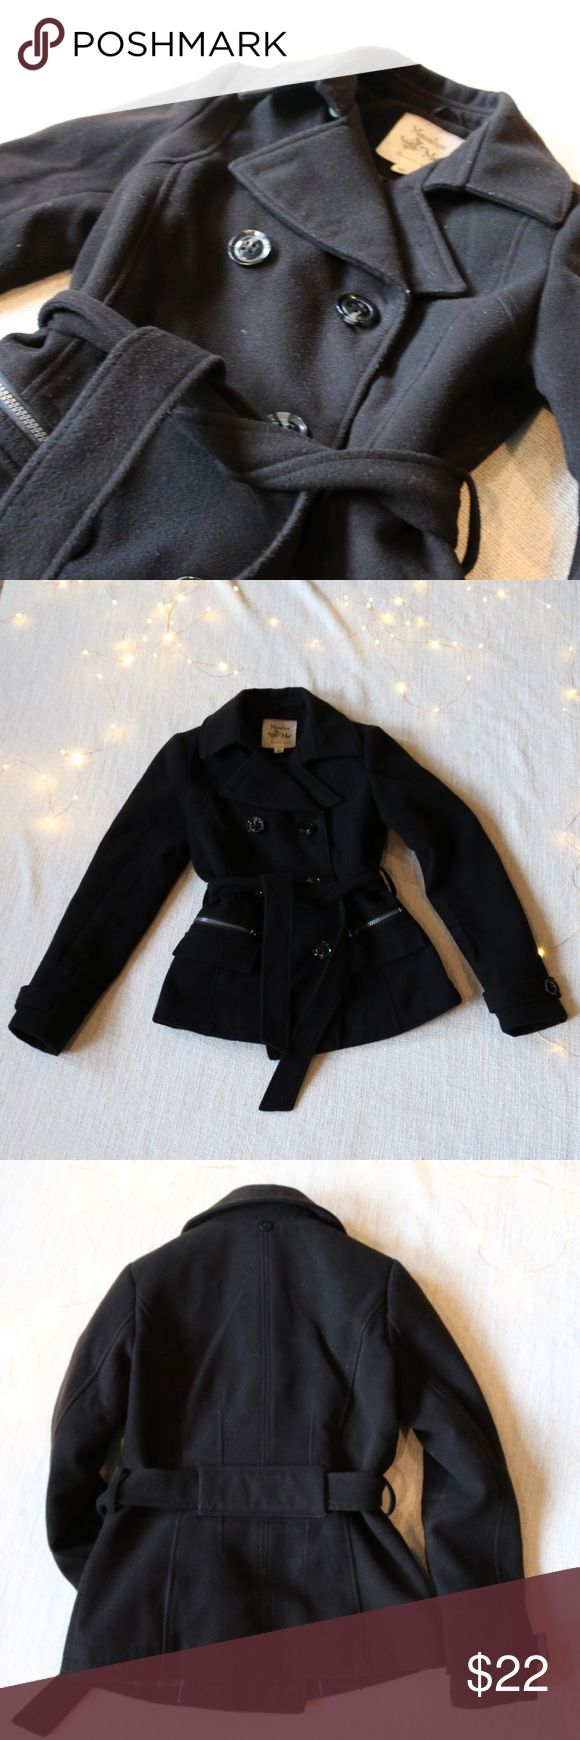 BLACK PEA-COAT Excellent condition. The pictures would be perfect if I'd had a lint roller. 😅   ☁️ Pet/smoke free home ☁️Steam cleaned ☁️No Trades/Paypal Maralyn & Me Jackets & Coats Pea Coats